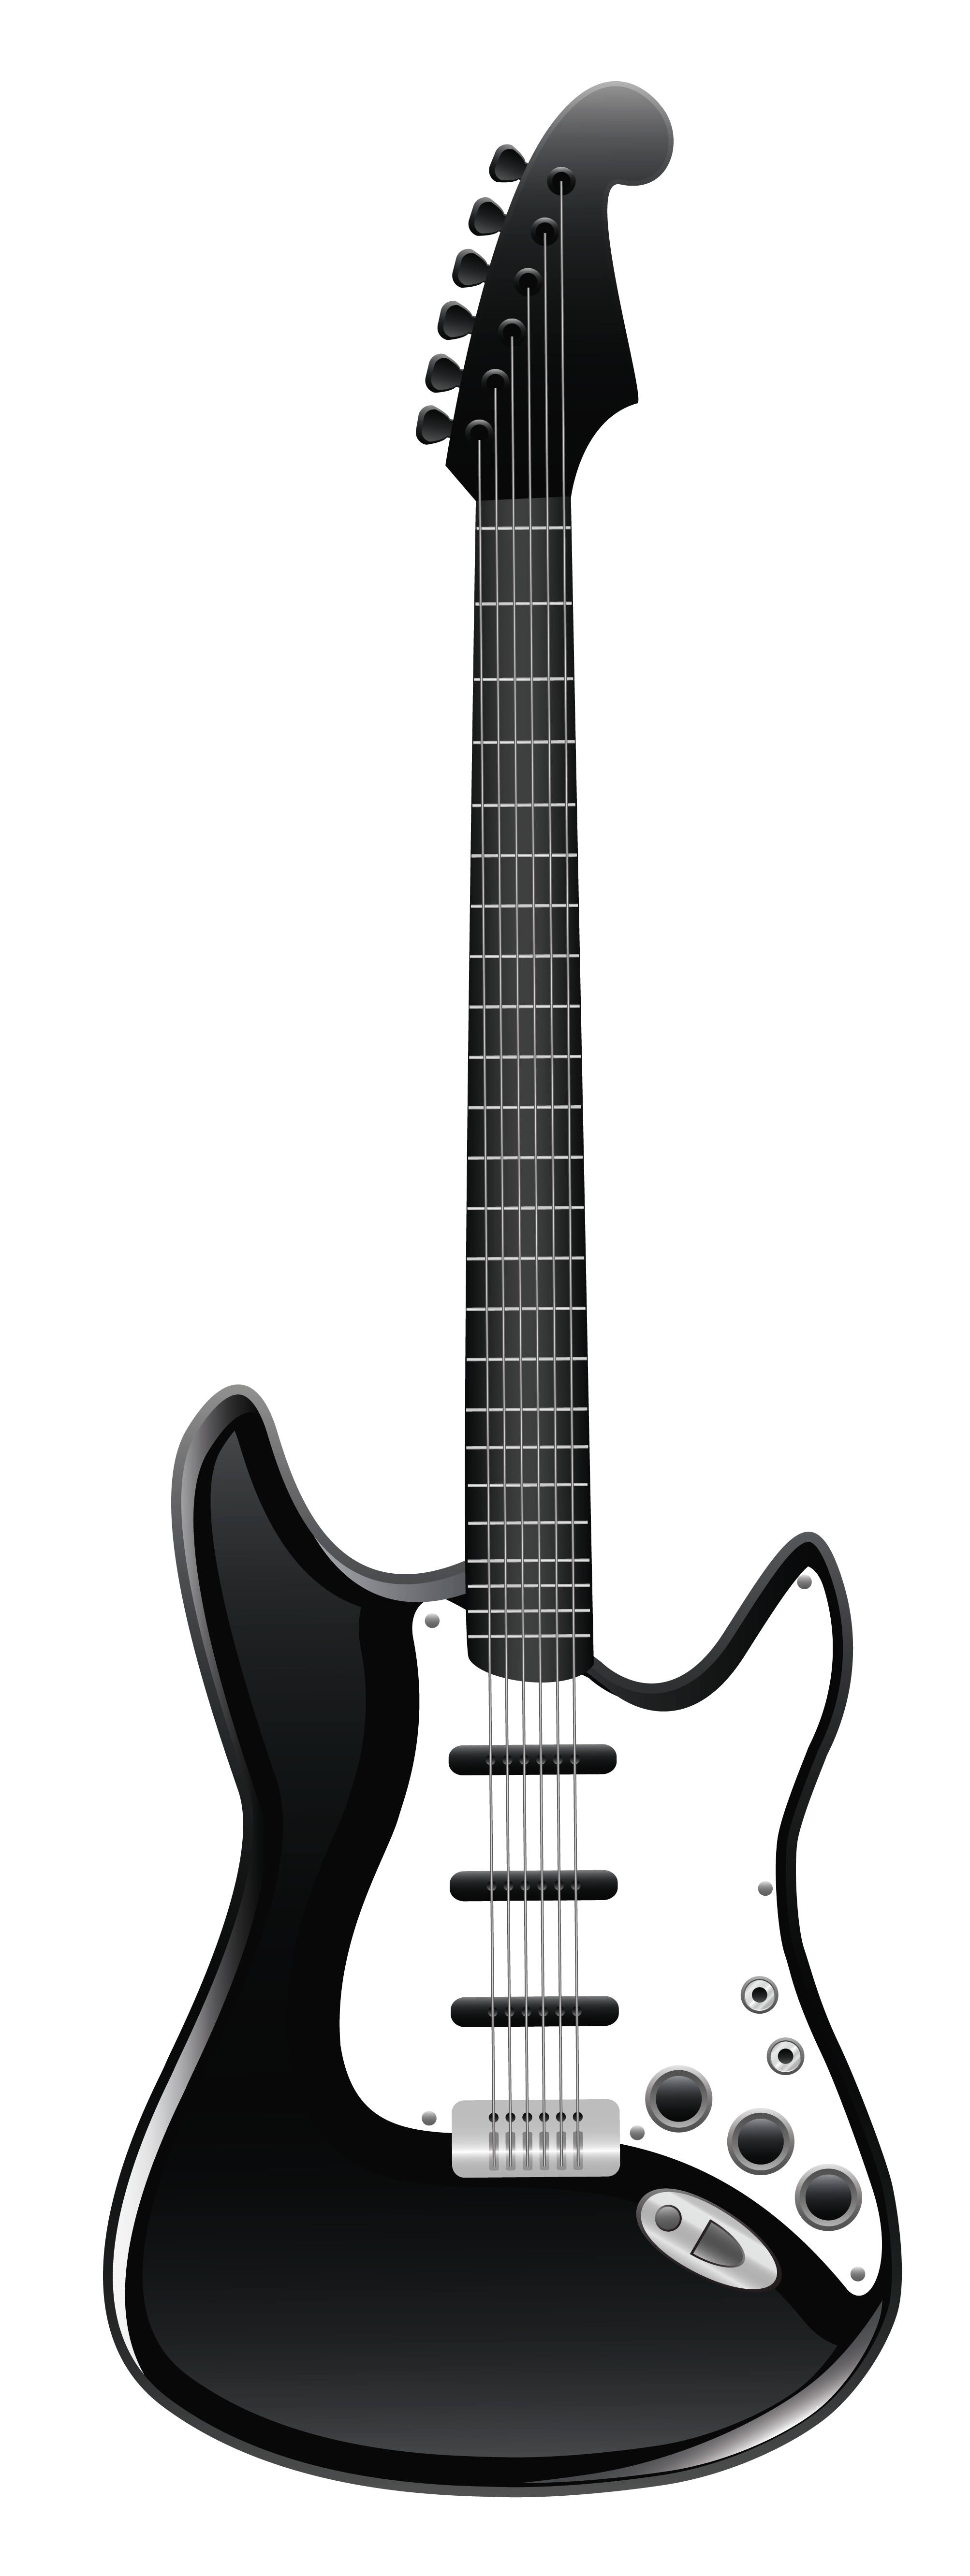 jpg black and white library Guitar clipart fiesta. Black and white music